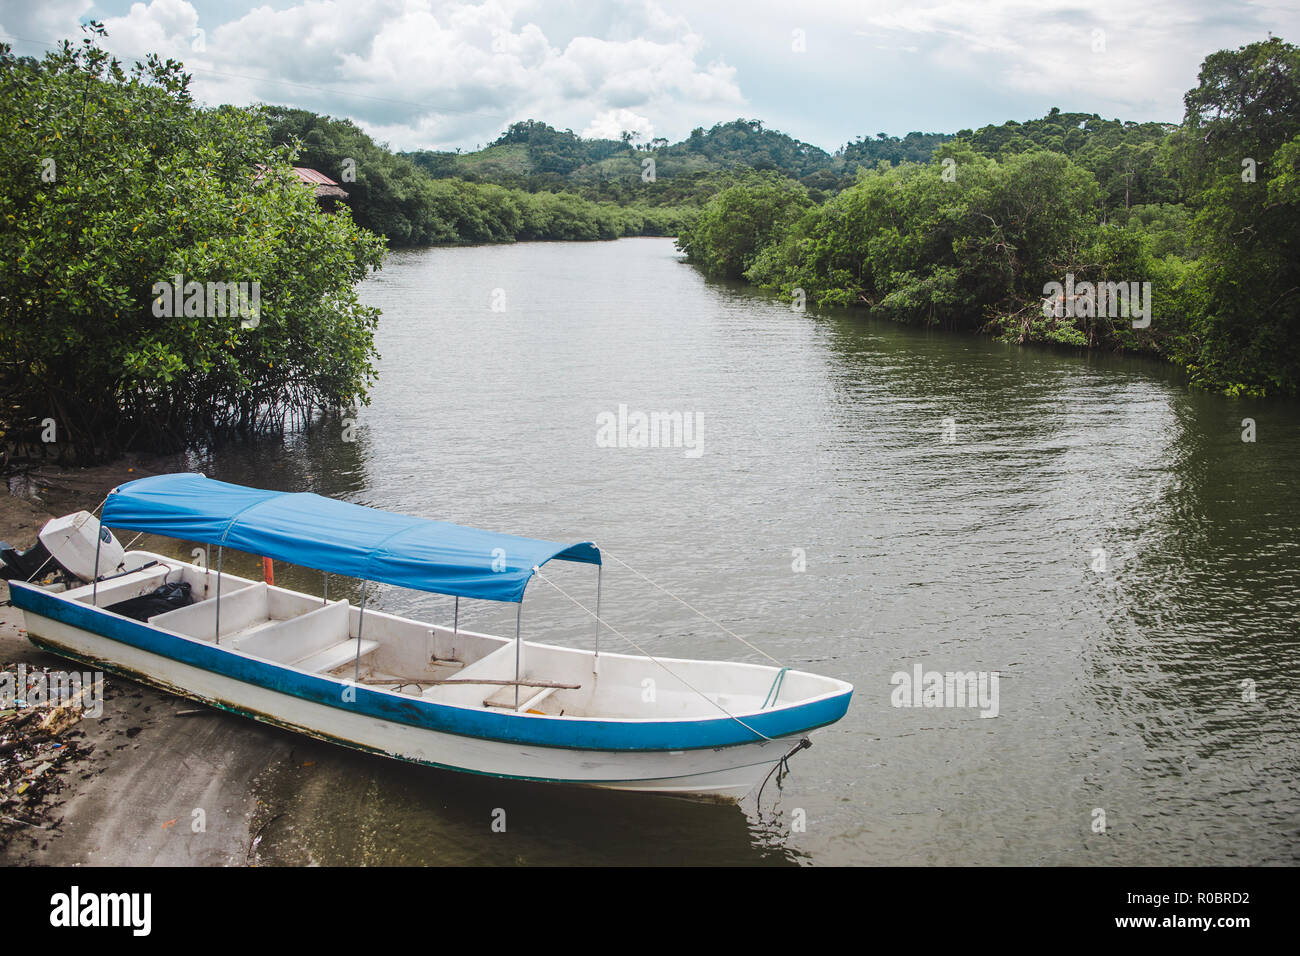 Blue and white motorized river boat on the lush green banks of the peaceful Quehueche river in Lívingston, east Guatemala - Stock Image